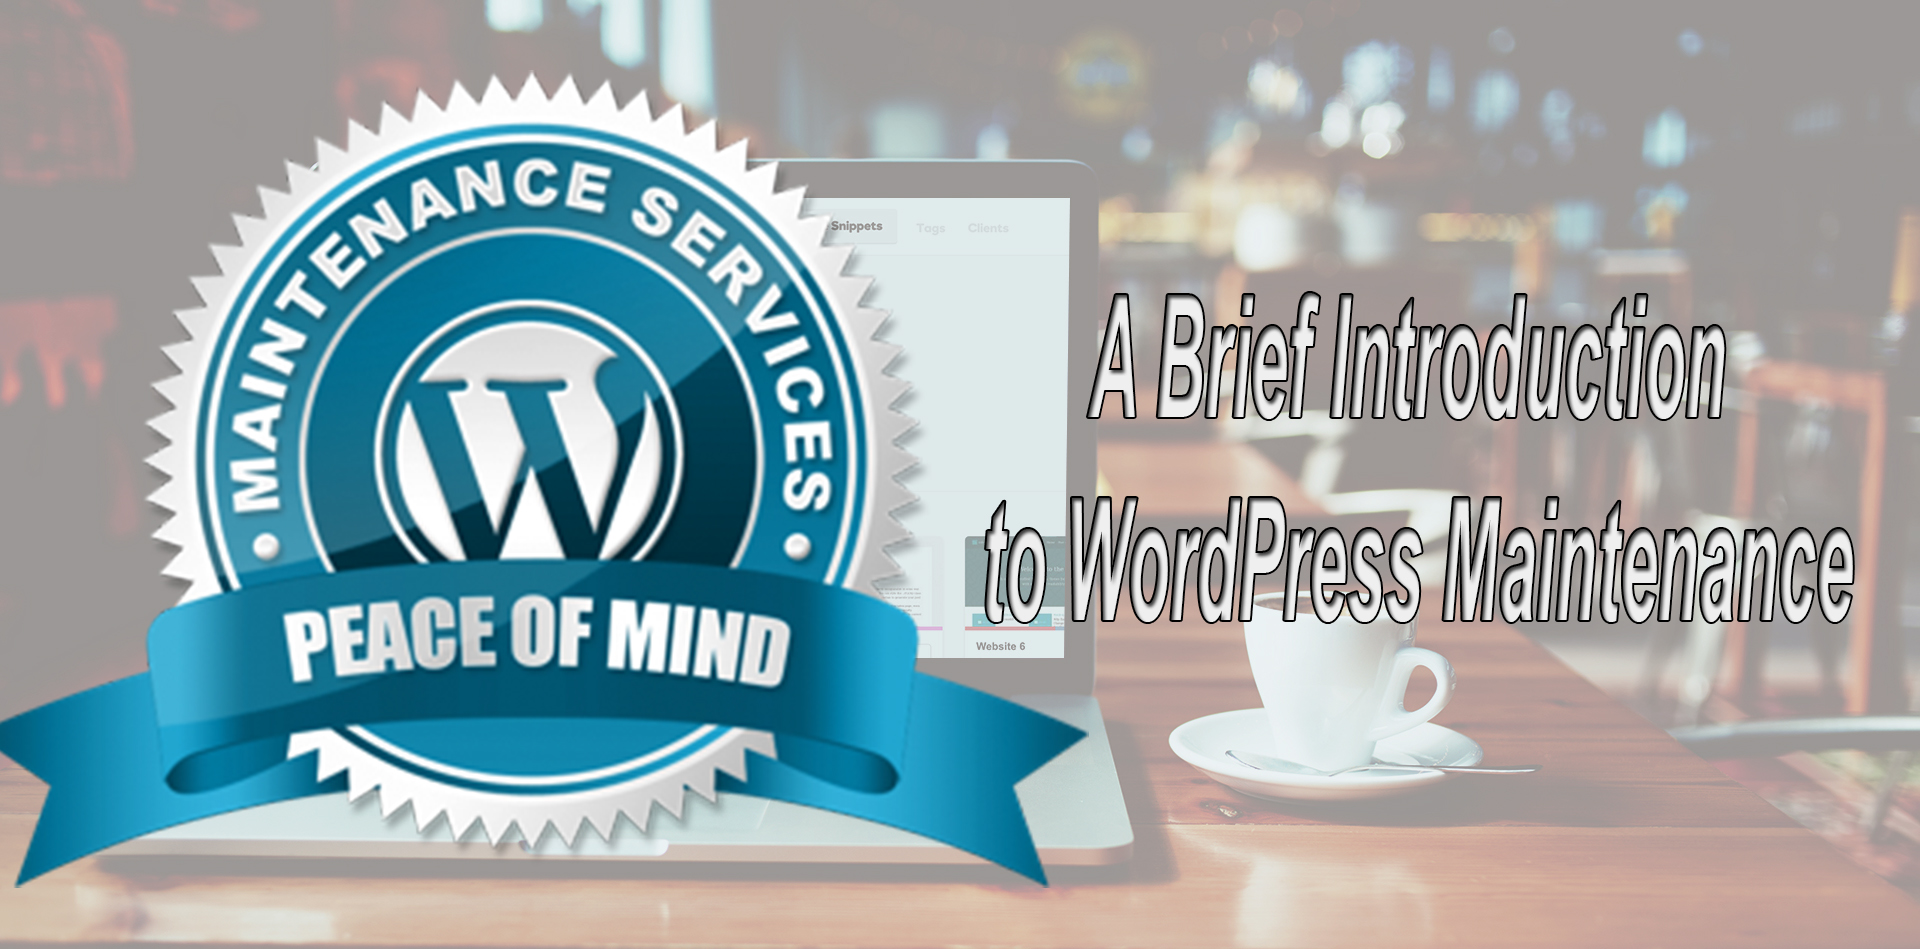 A Brief Introduction to WordPress Maintenance